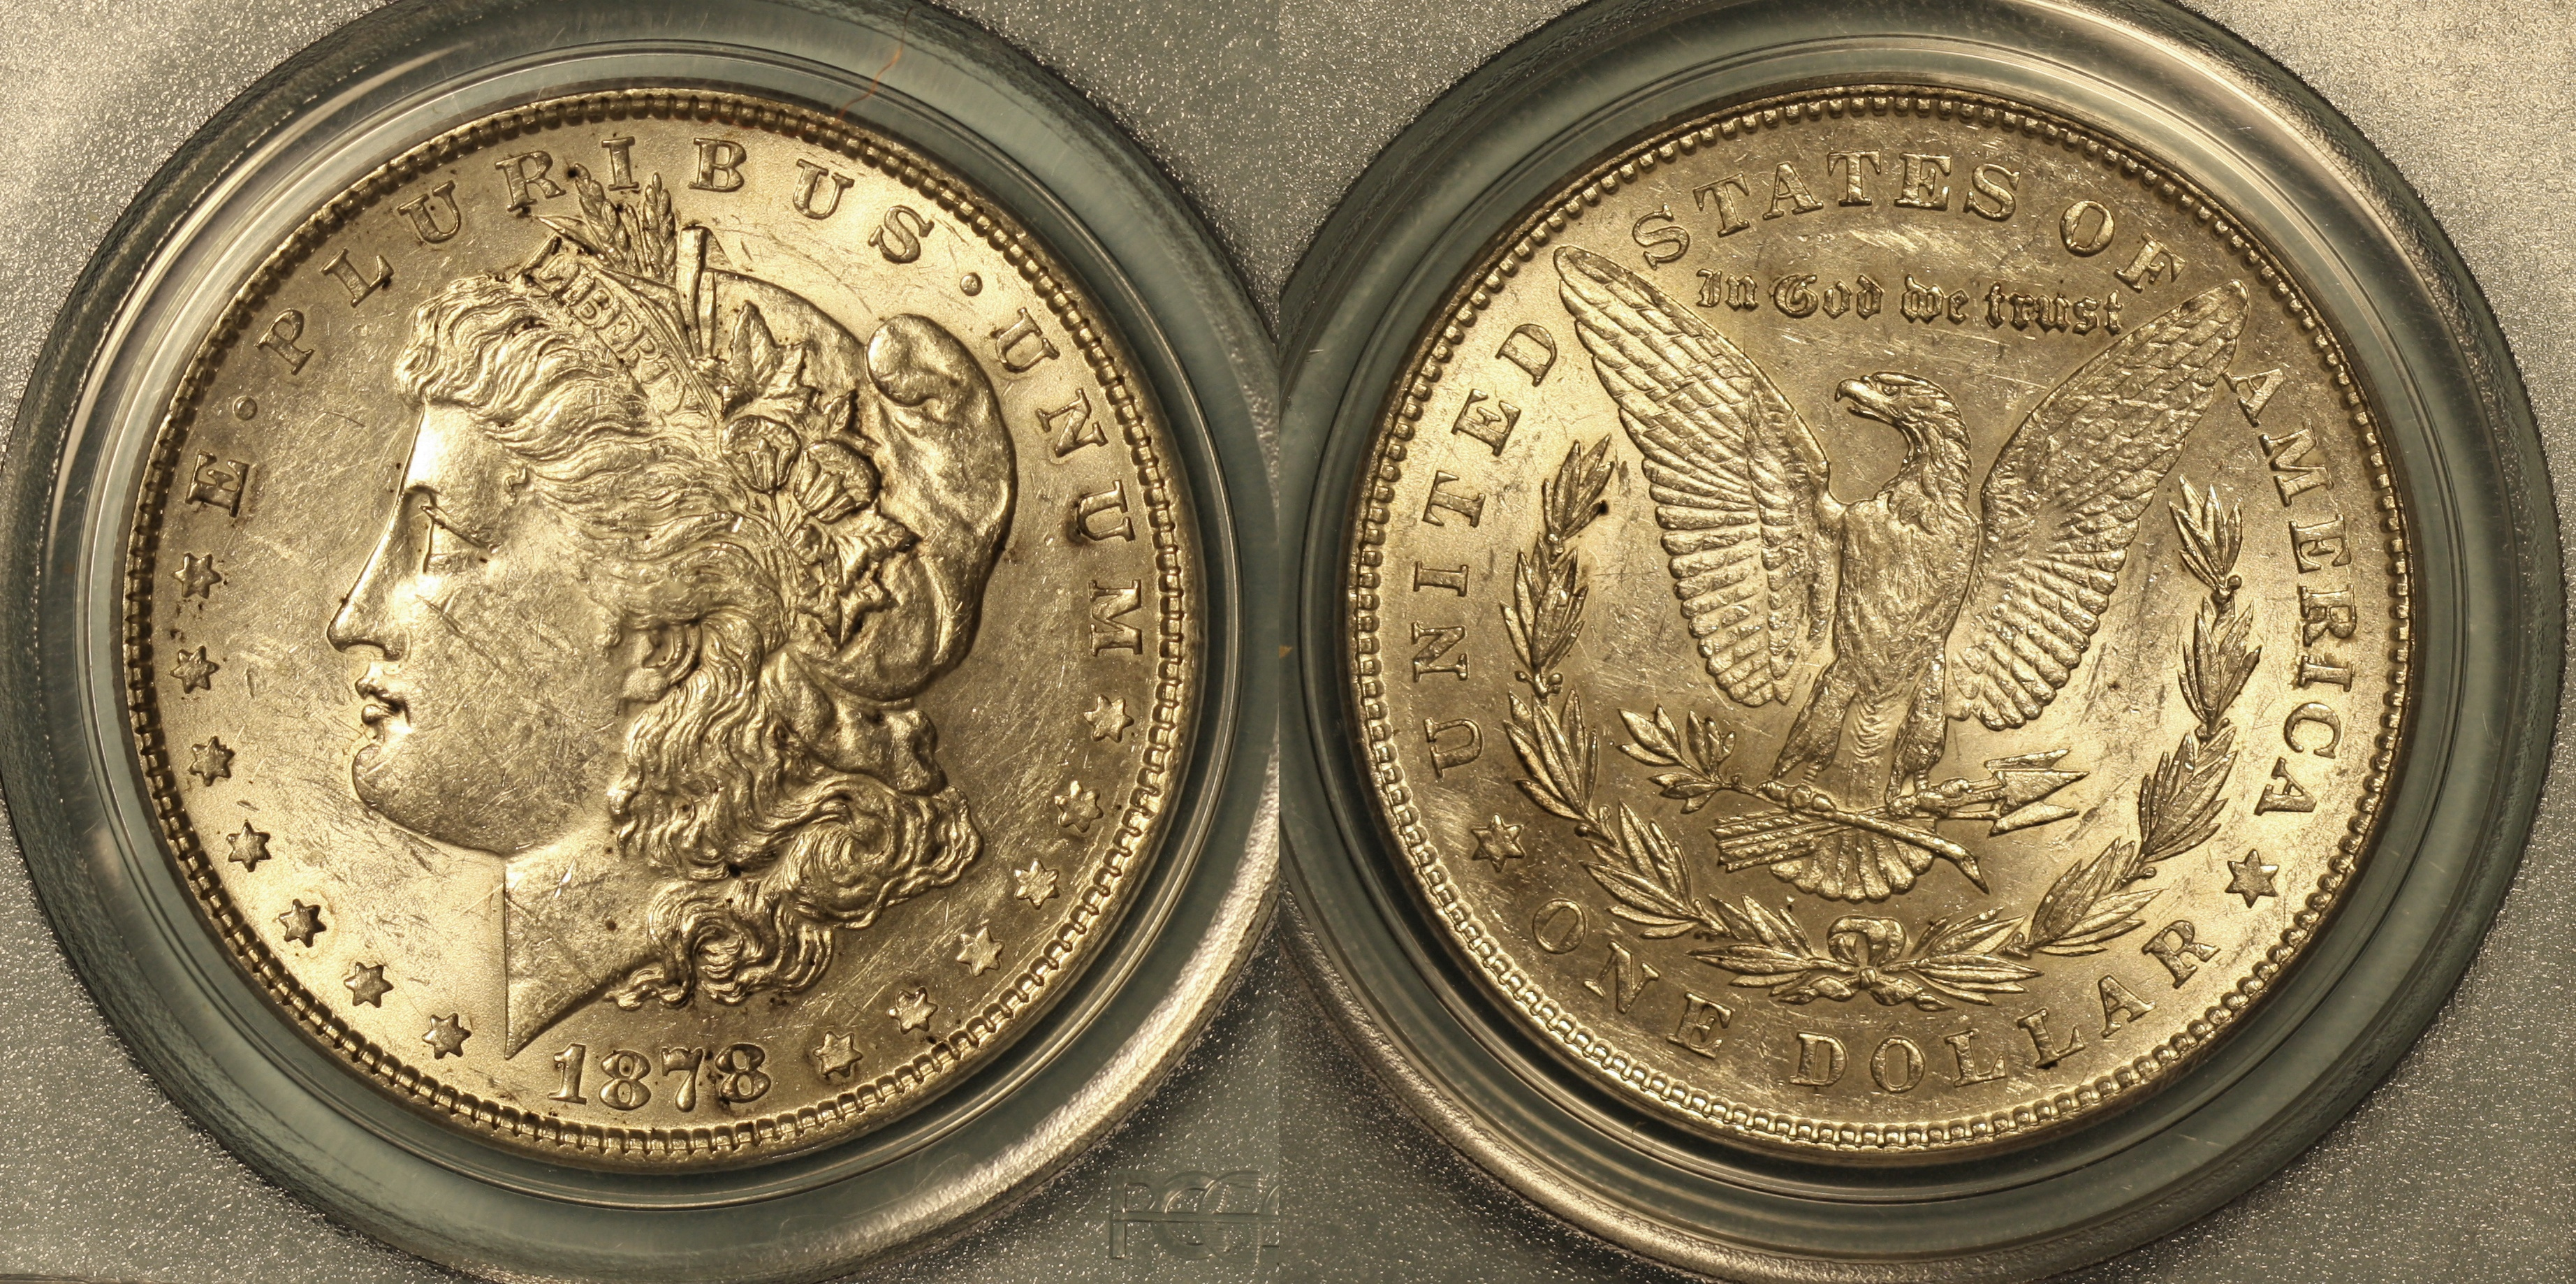 1878 7 Tailfeathers Morgan Silver Dollar PCGS AU-53 camera